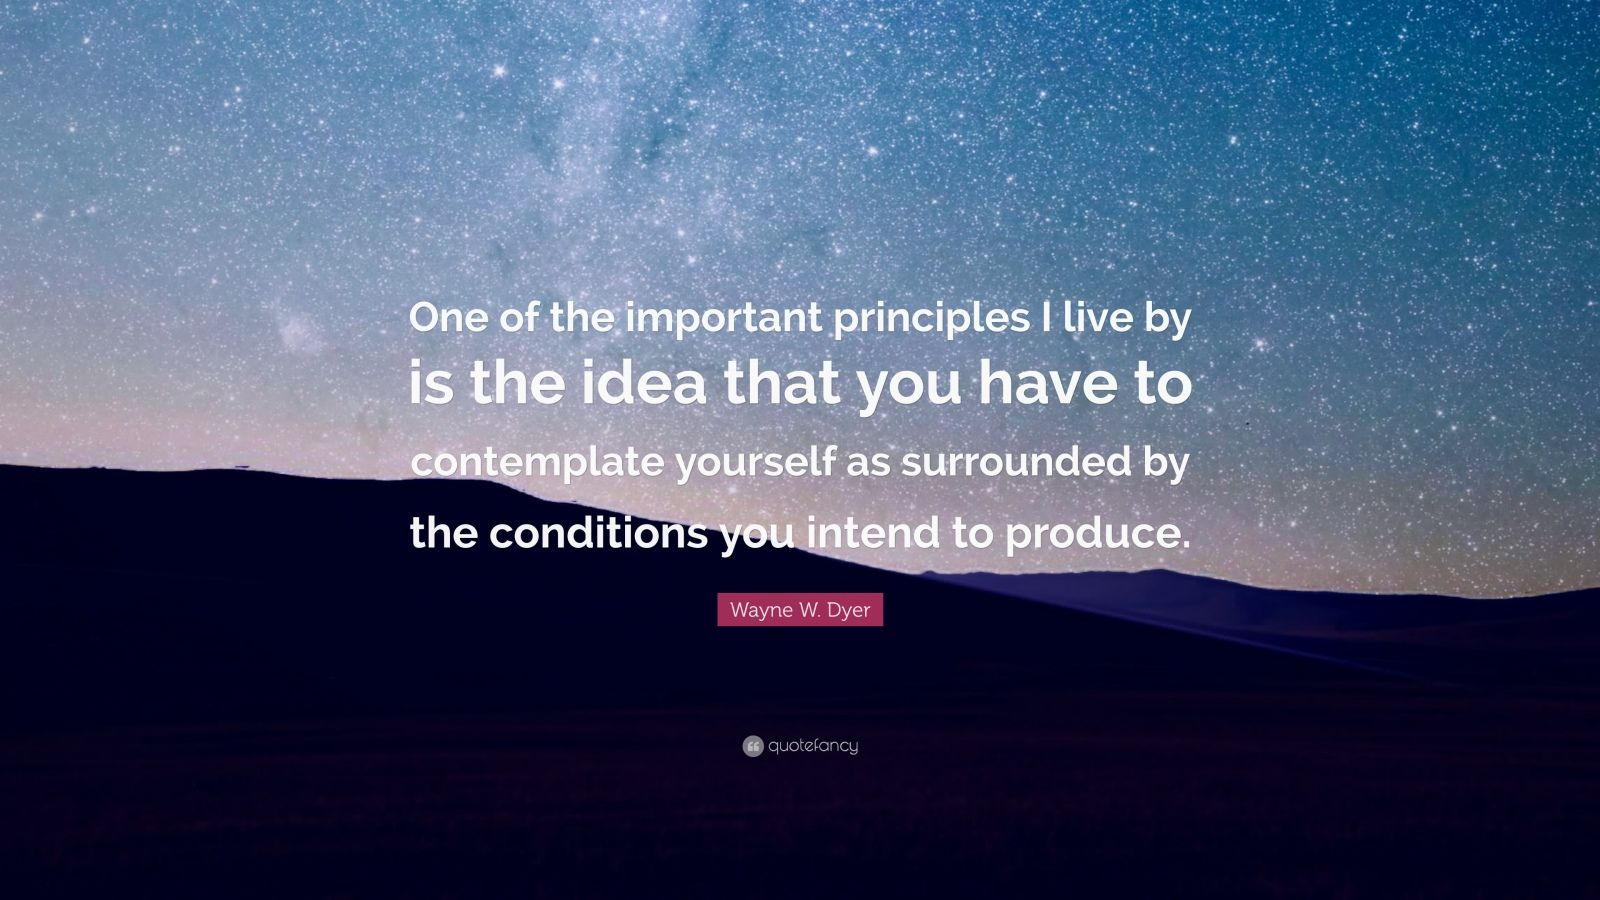 """Wayne W. Dyer Quote: """"One of the important principles I live by is the idea that you have to contemplate yourself as surrounded by the conditions you intend to produce."""""""